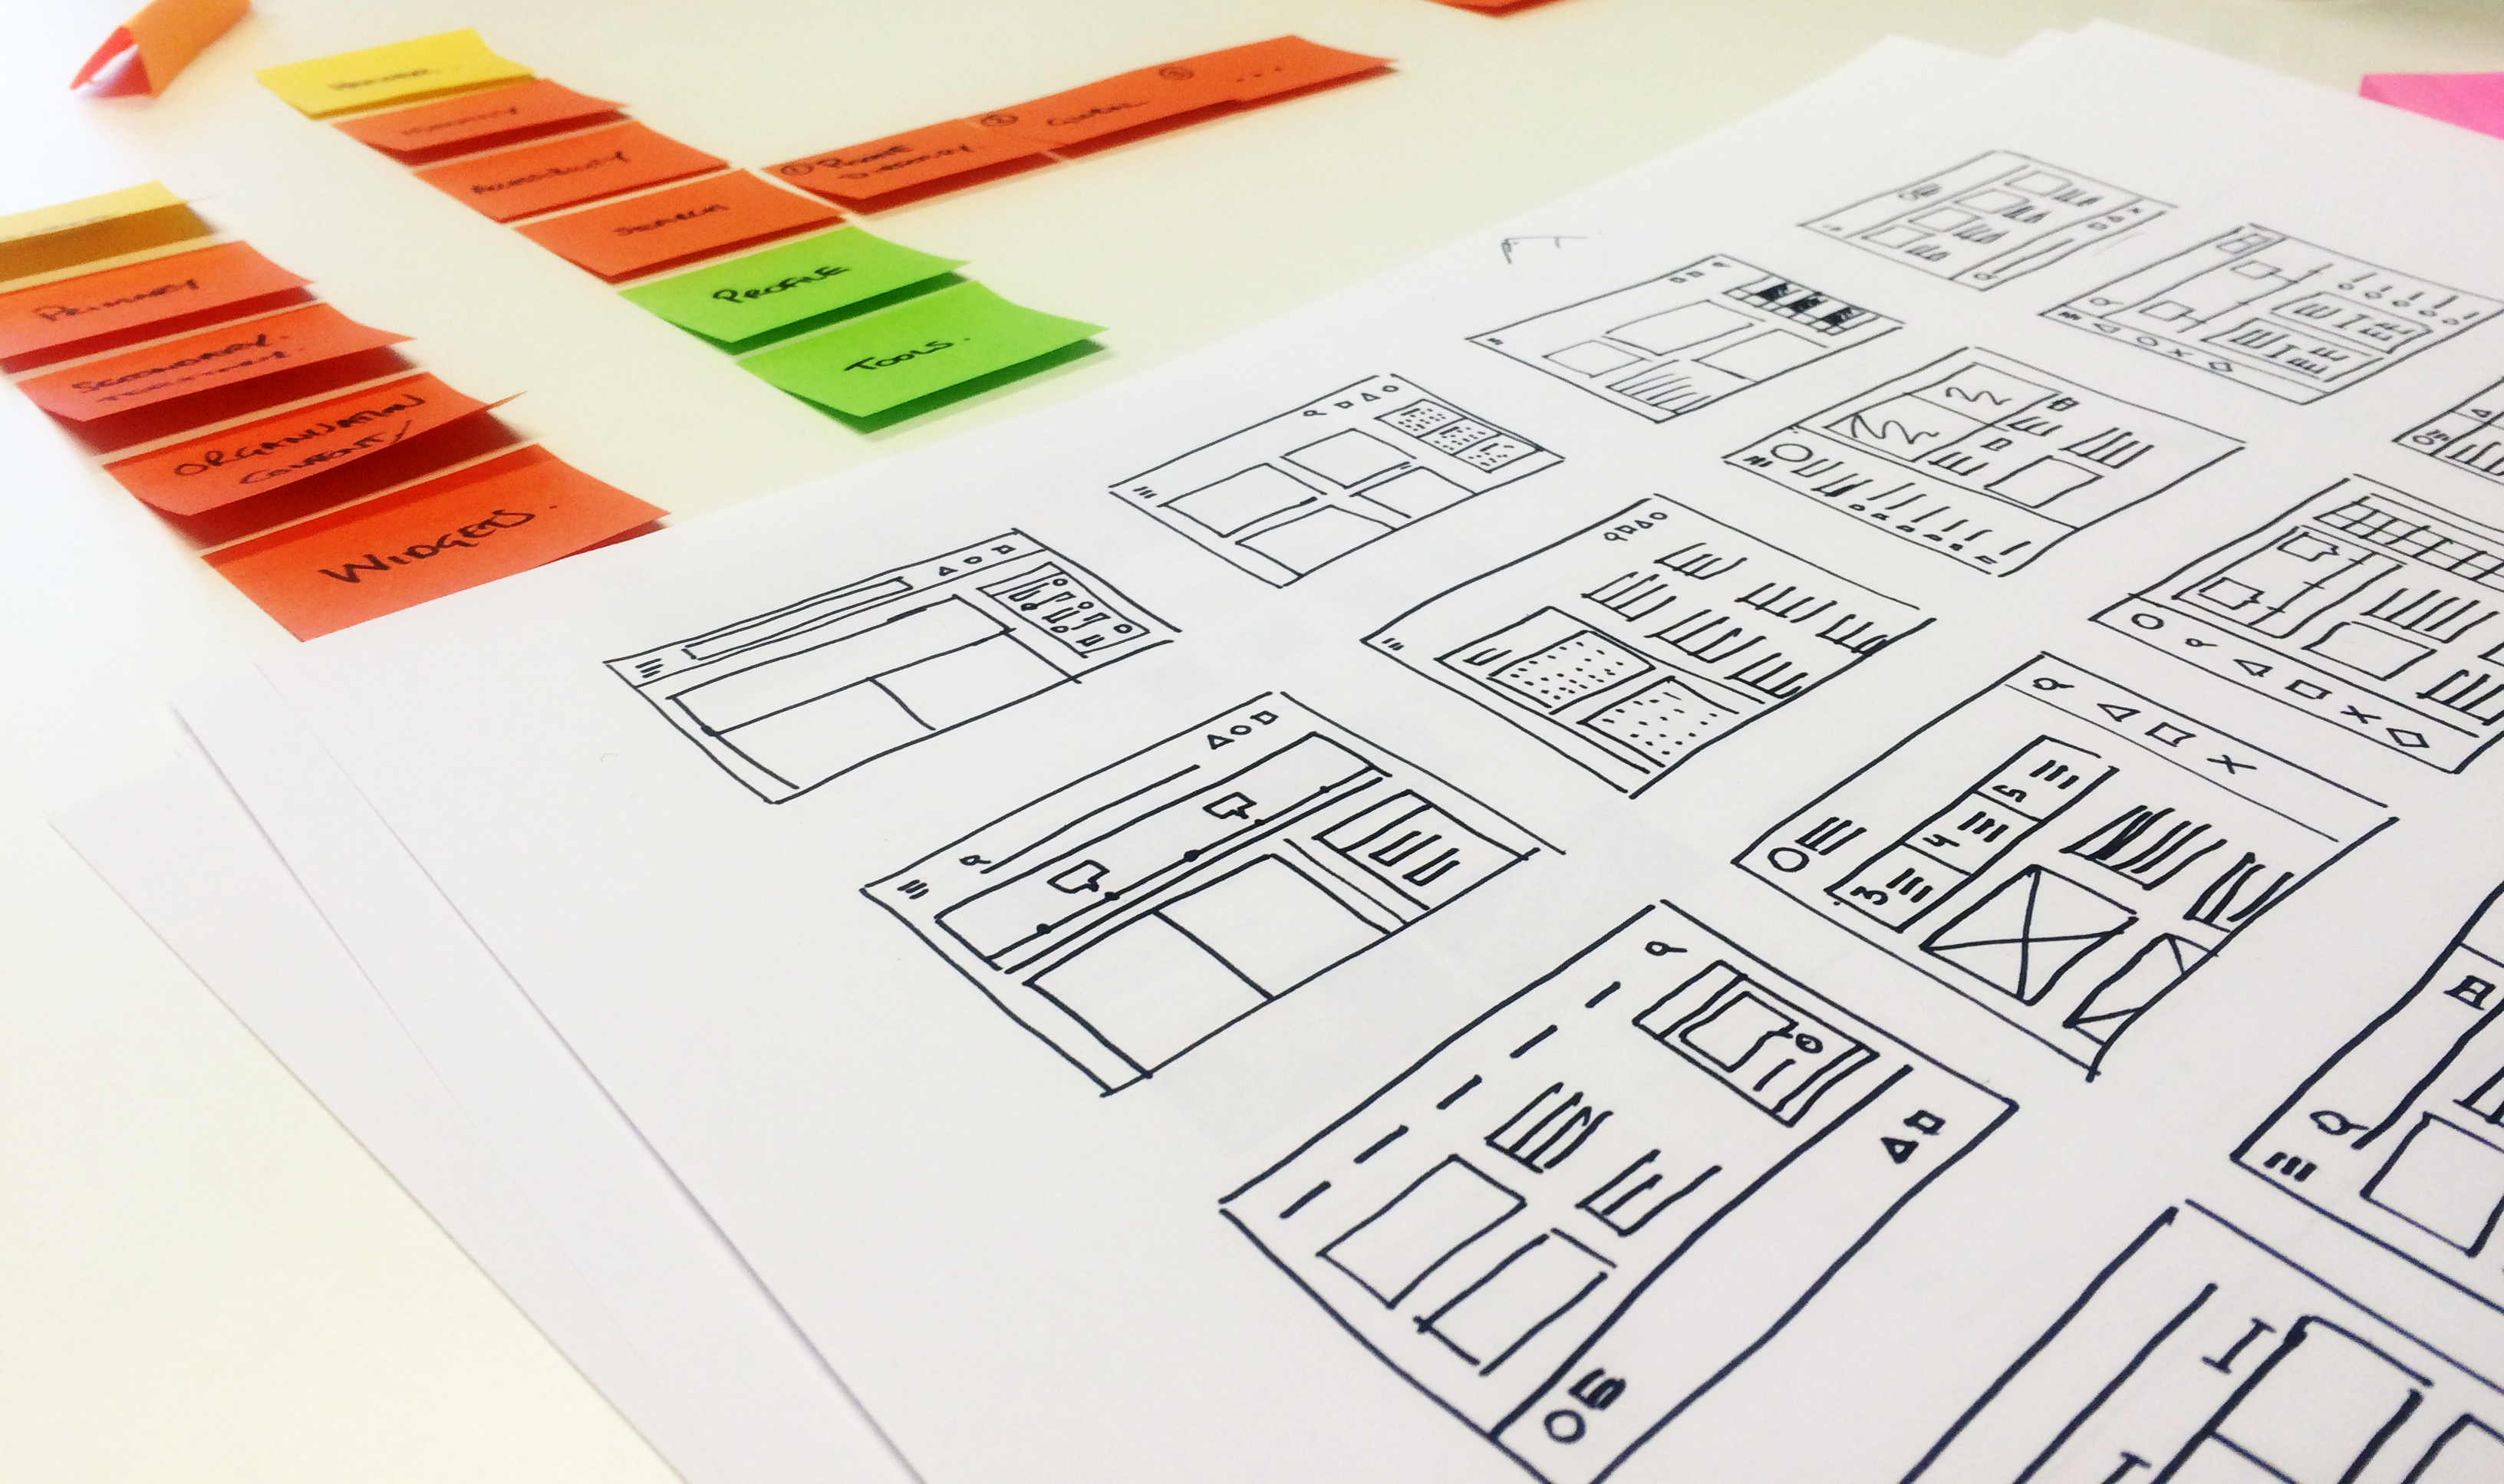 Join TfL for a 5-day design sprint